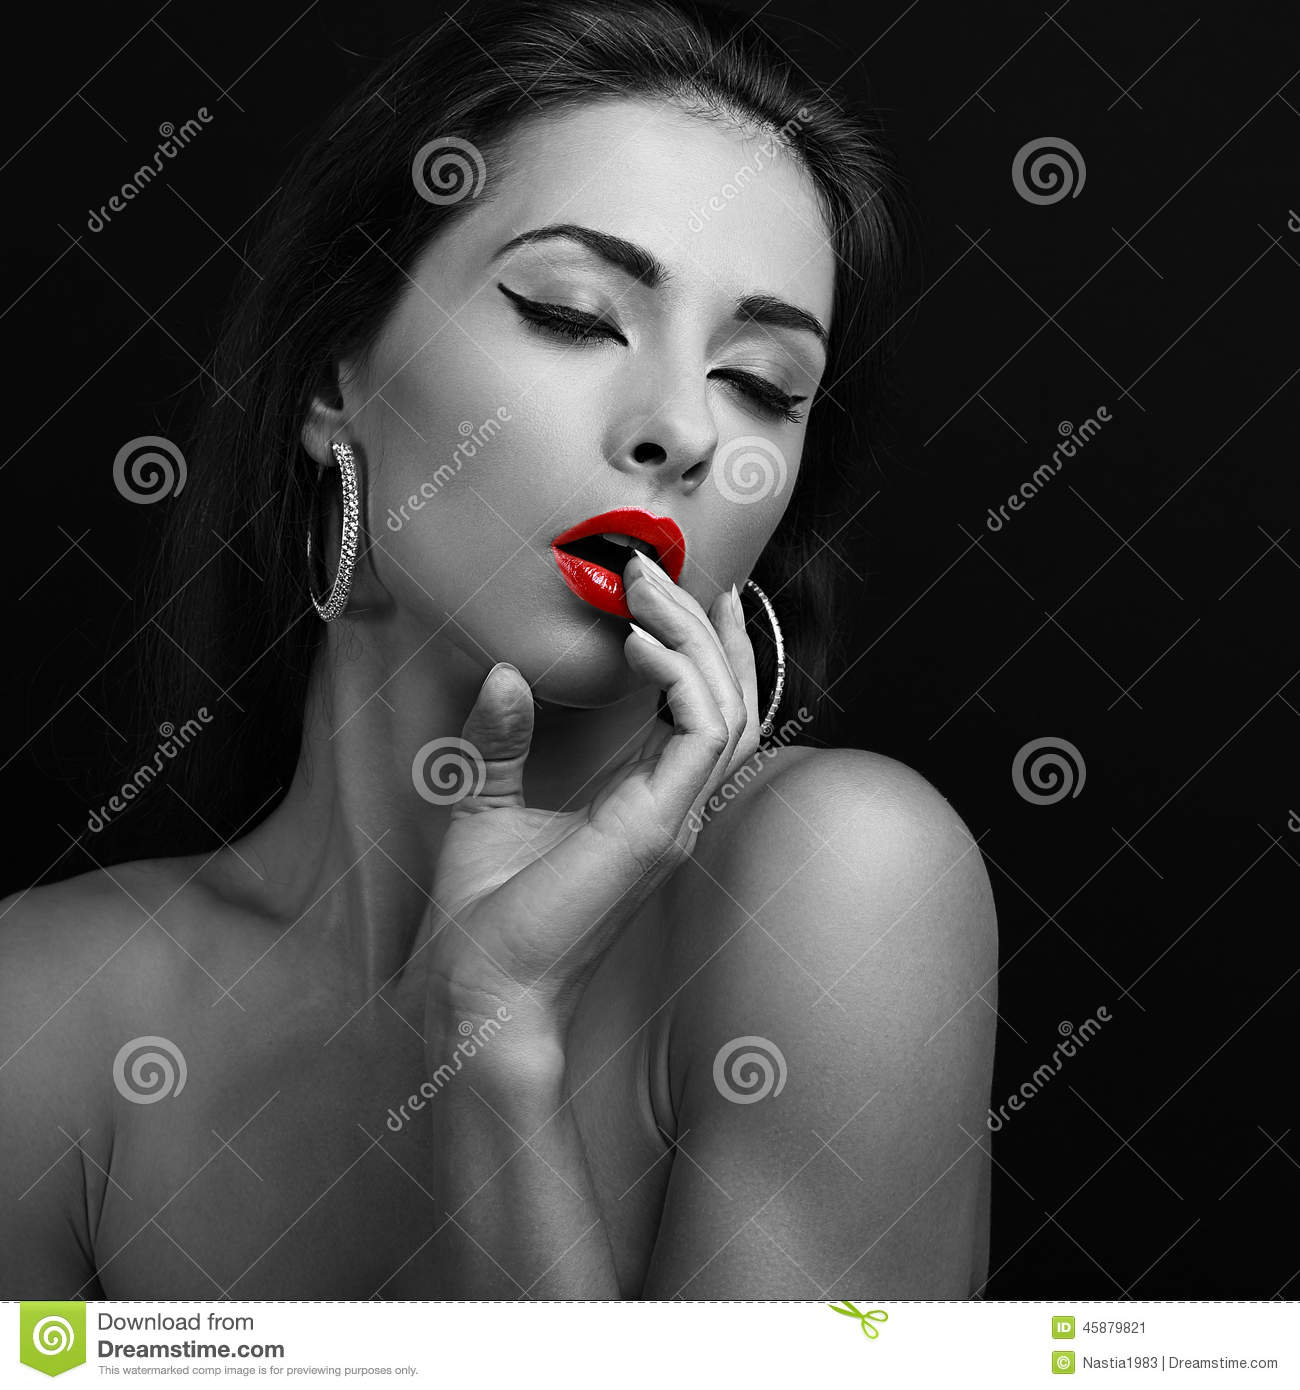 young woman with close eyes touching stock image - image of